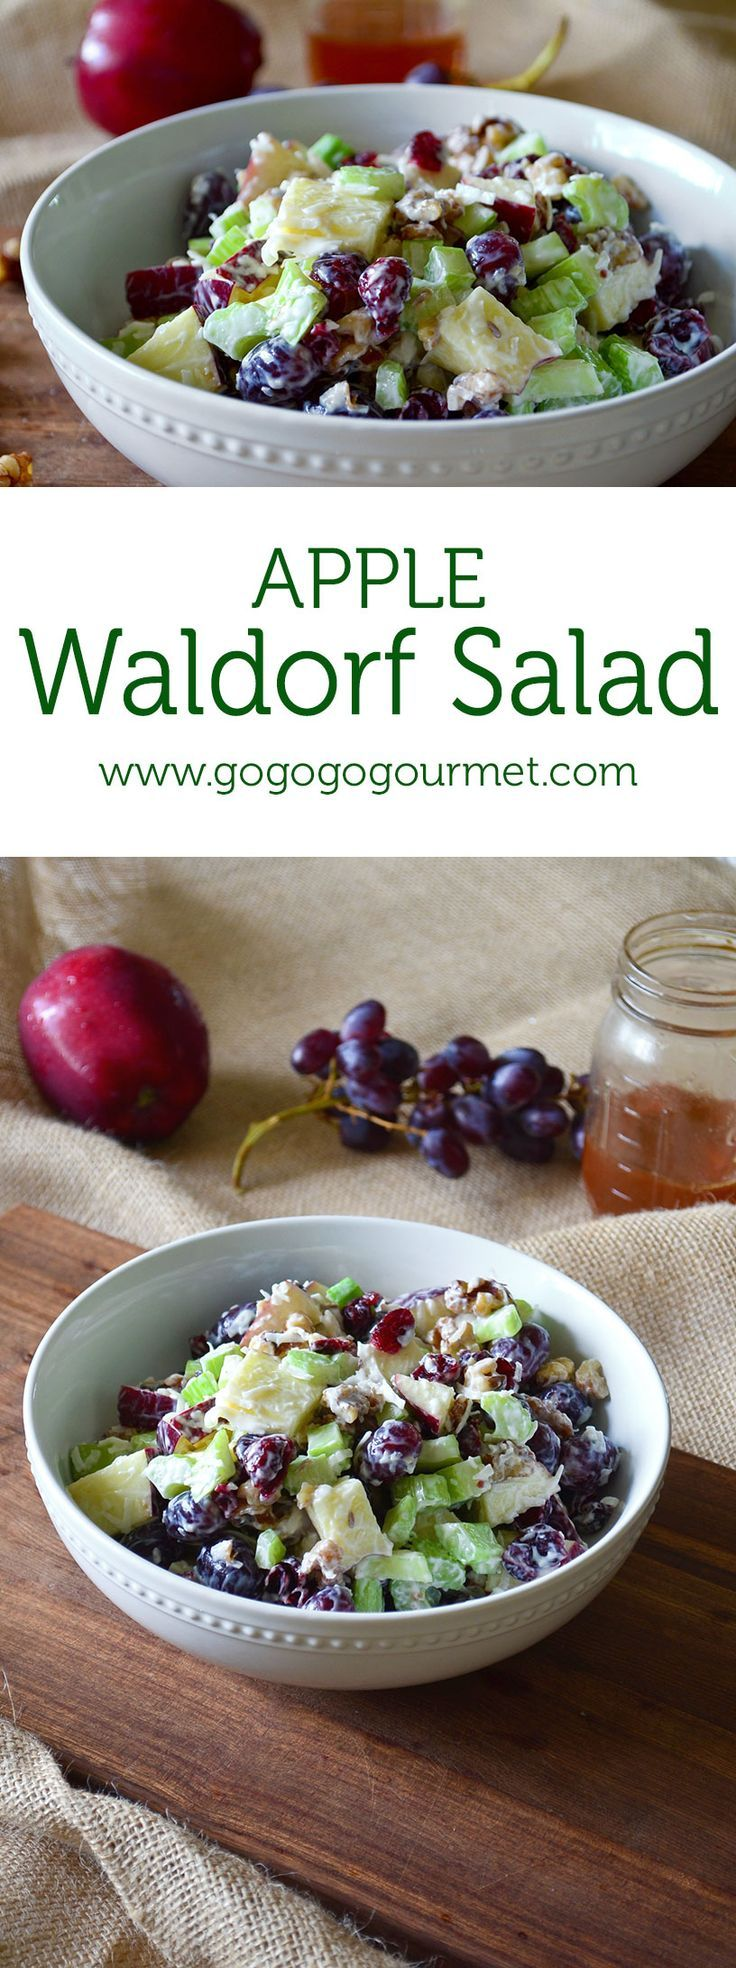 With crunchy walnuts, celery, grapes and apples and a sweet dressing, this salad redefines the word!   Go Go Go Goumret @gogogogourmet